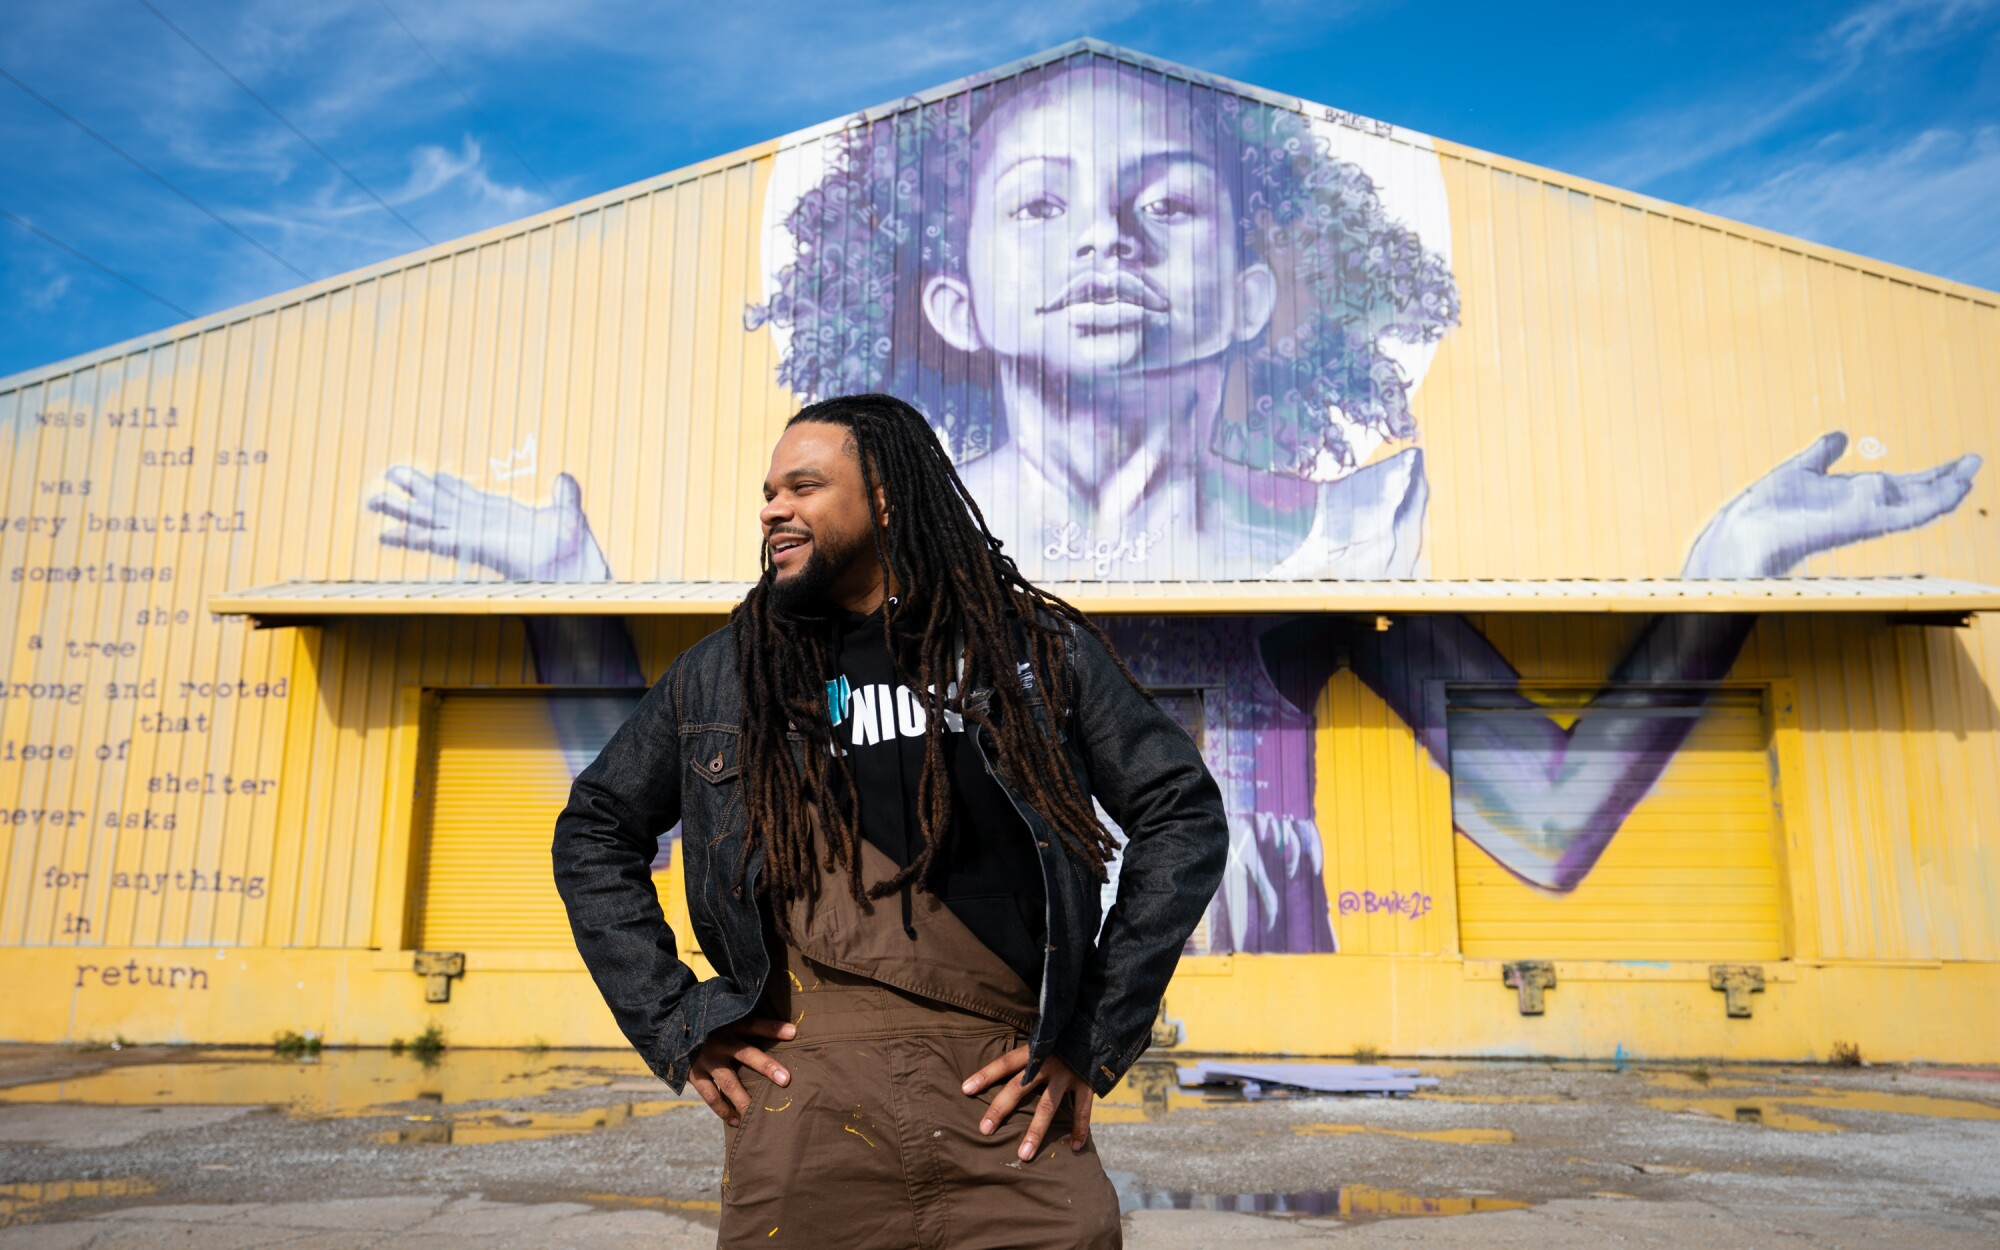 As he transforms neglected corners of New Orleans, artist Brandan Odums can add 'alchemist' to his resume - Los Angeles Times